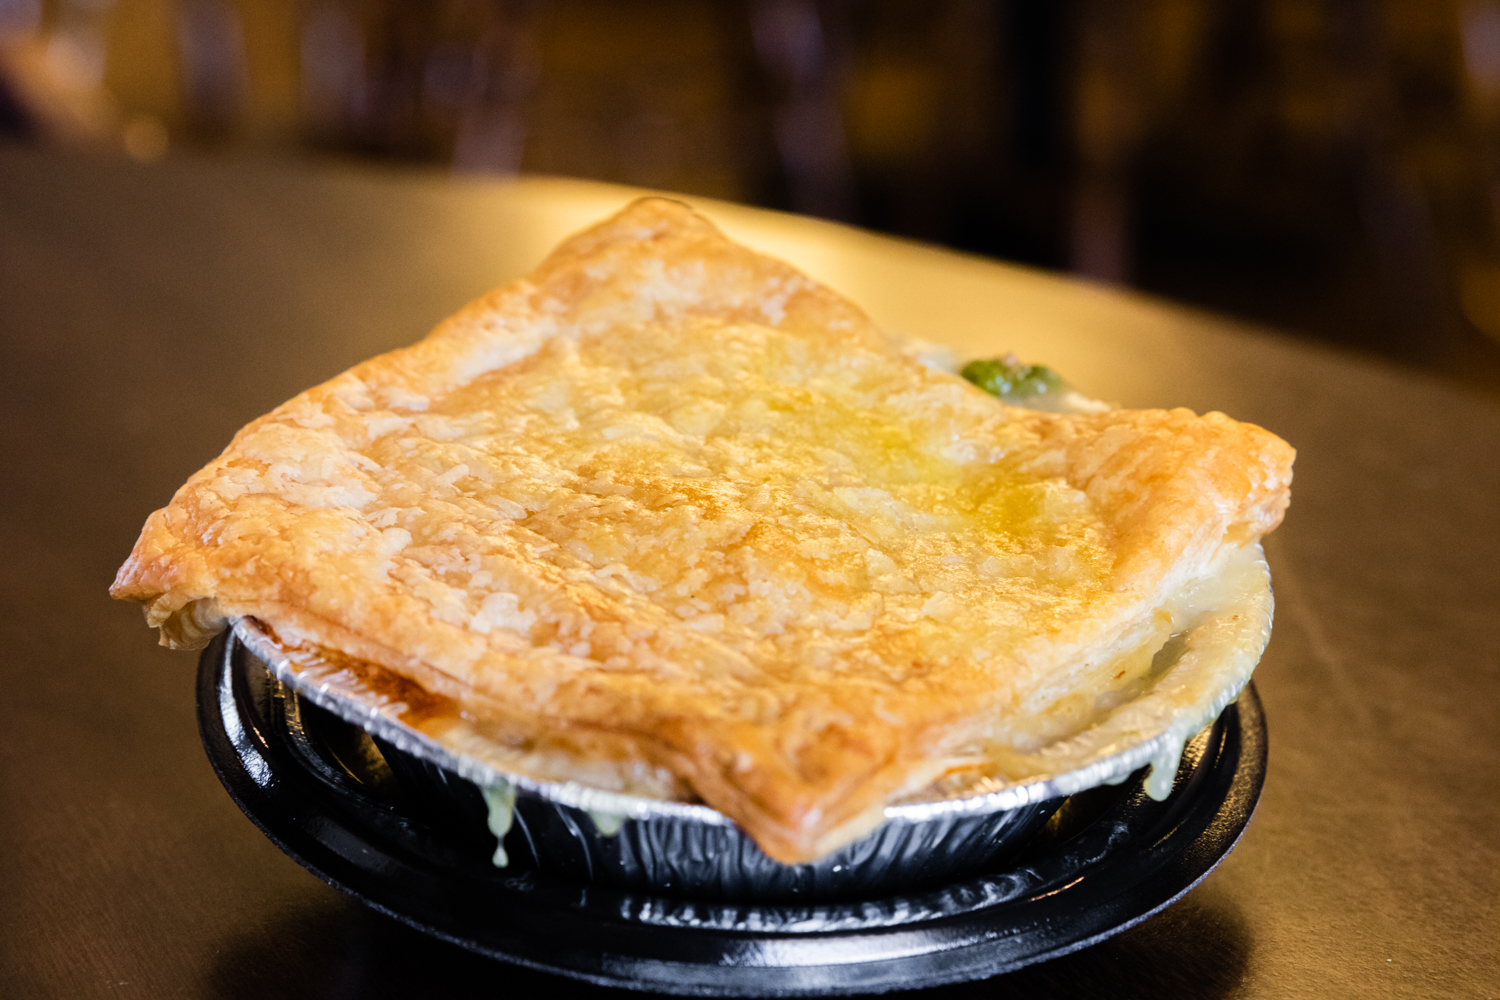 Turkey pot pie in aluminum foil dish on top of dish